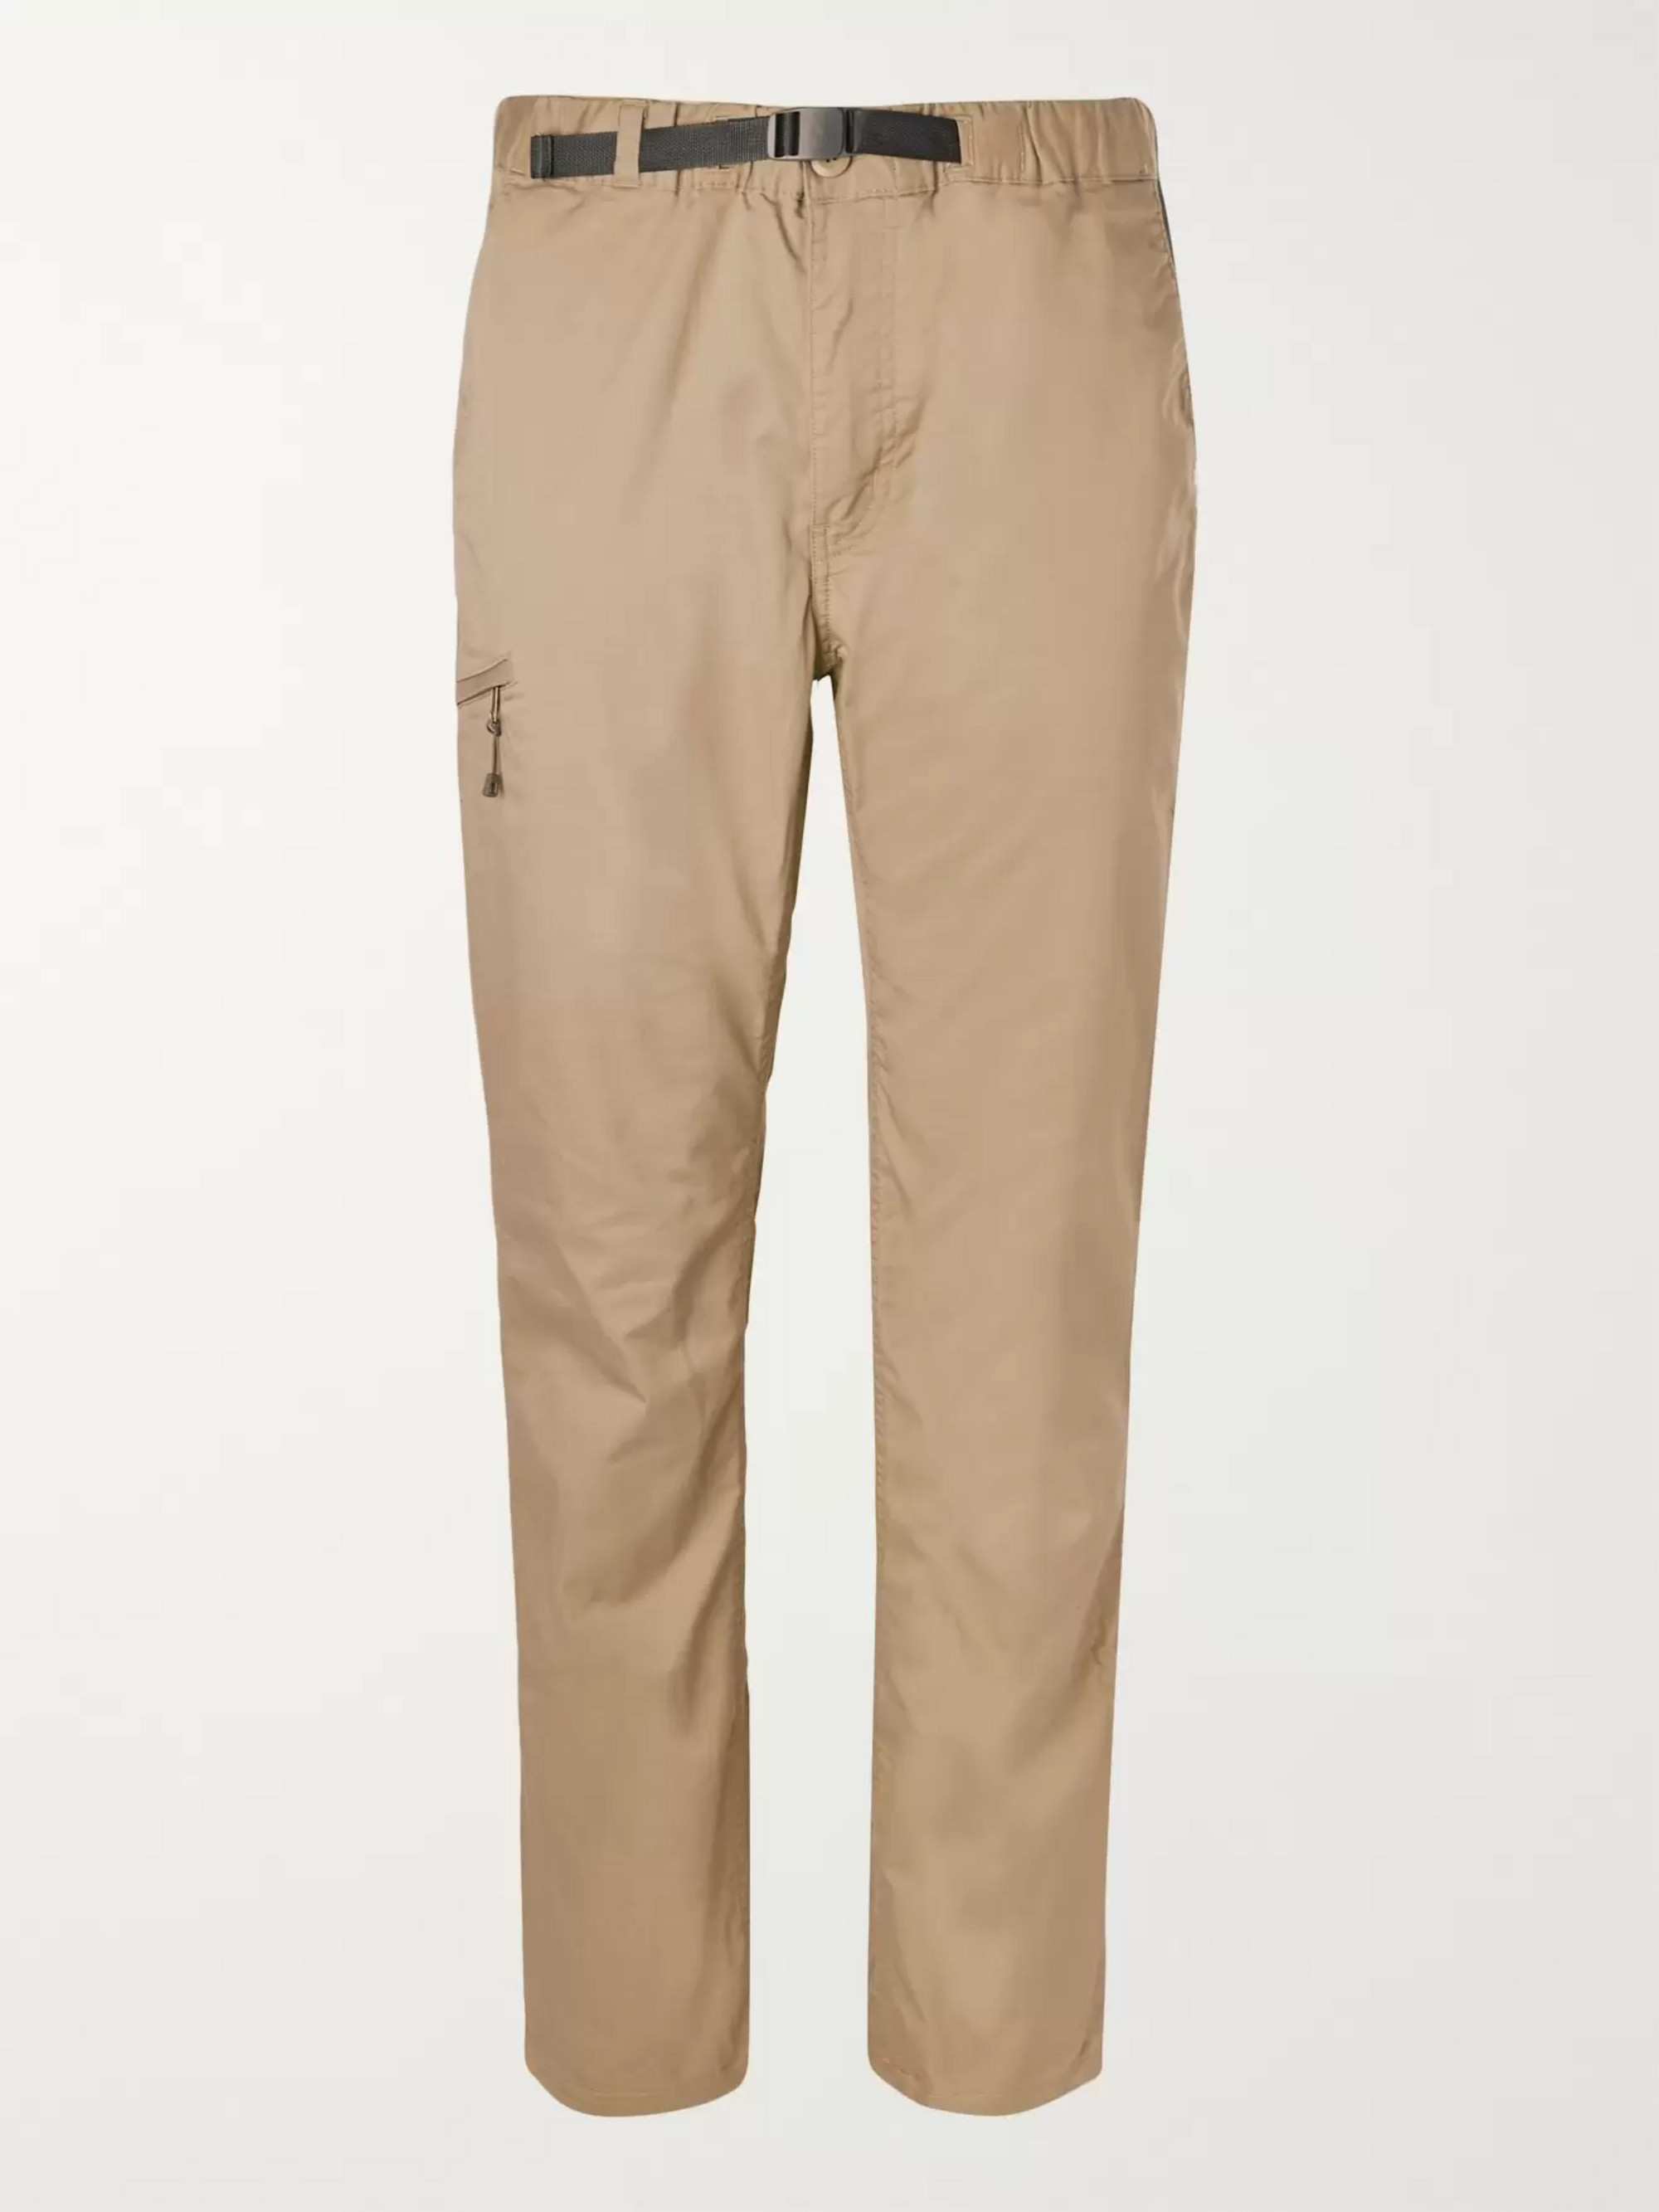 Patagonia Performance GI IV Organic Cotton-Blend Twill Trousers